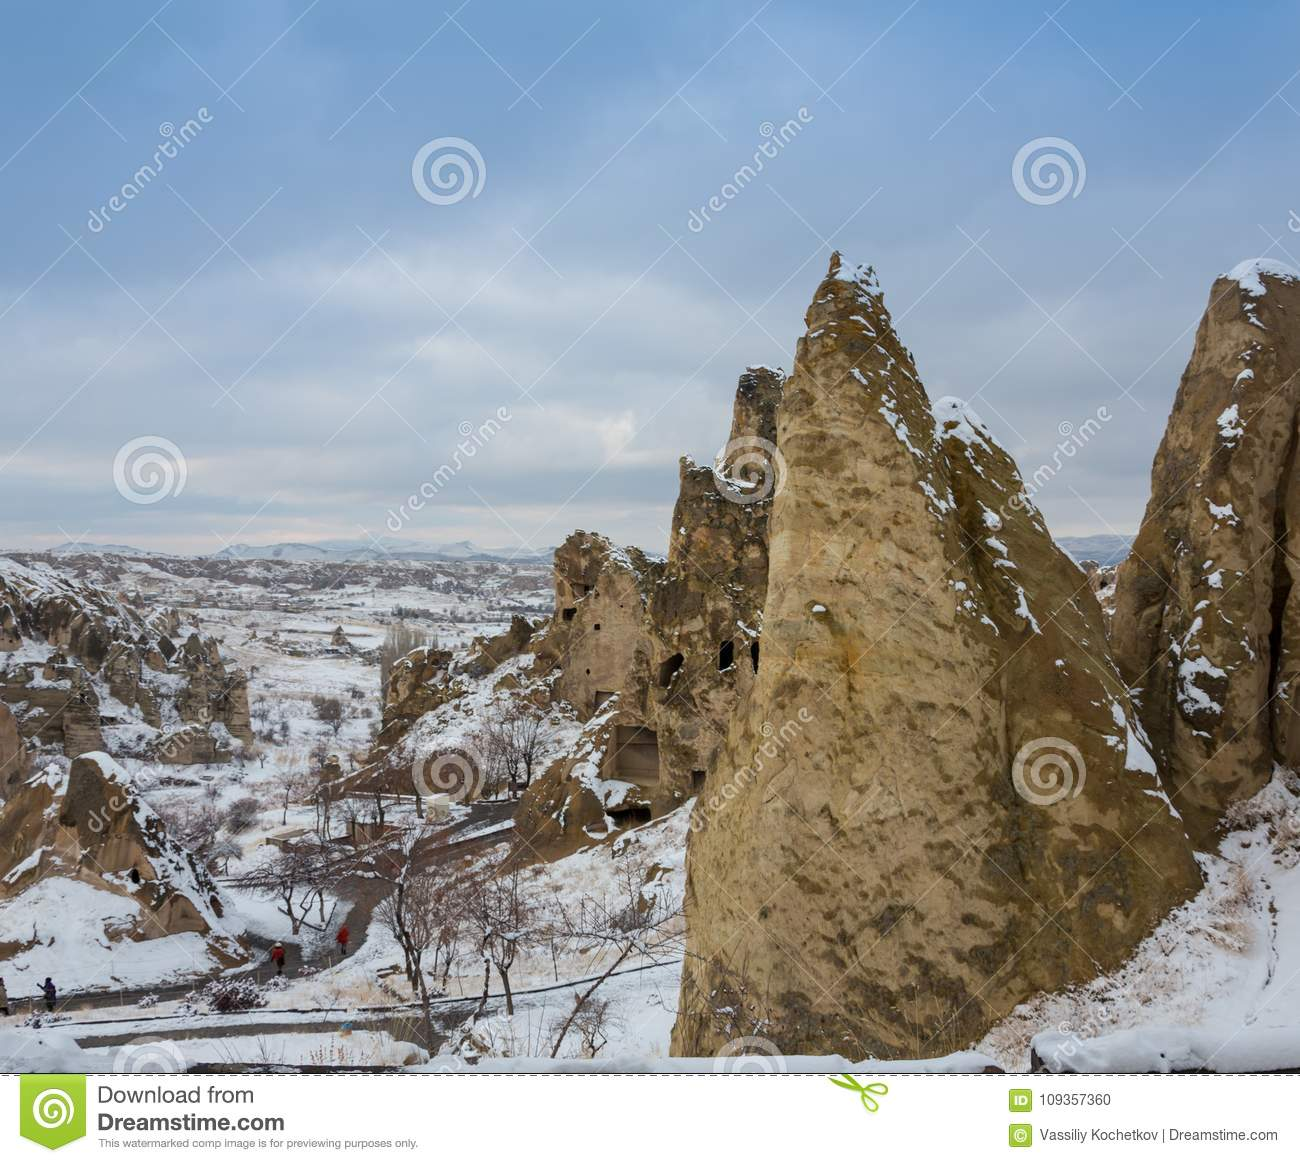 View of ancient Uchisar cave town and a castle of Uchisar dug from a mountains in Cappadocia, Central Anatolia,Turkey